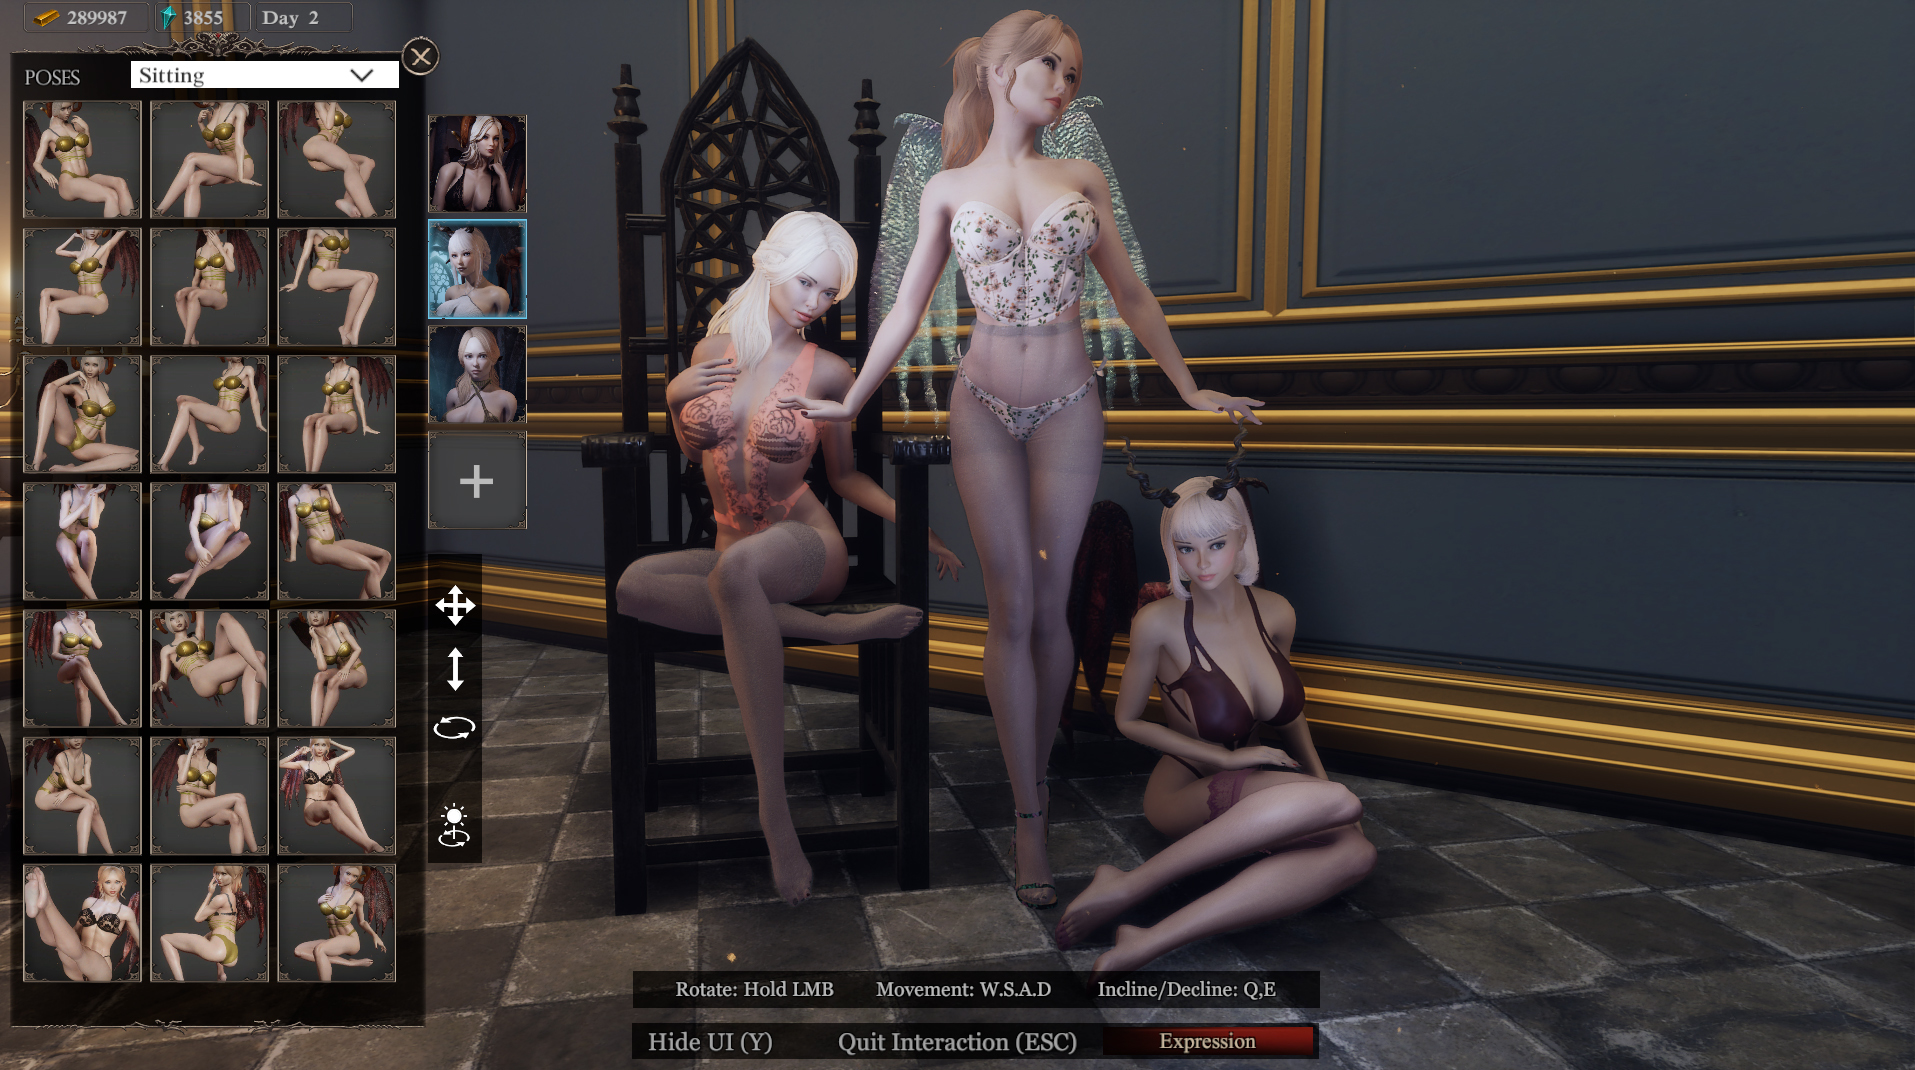 she will punish them new poses 2